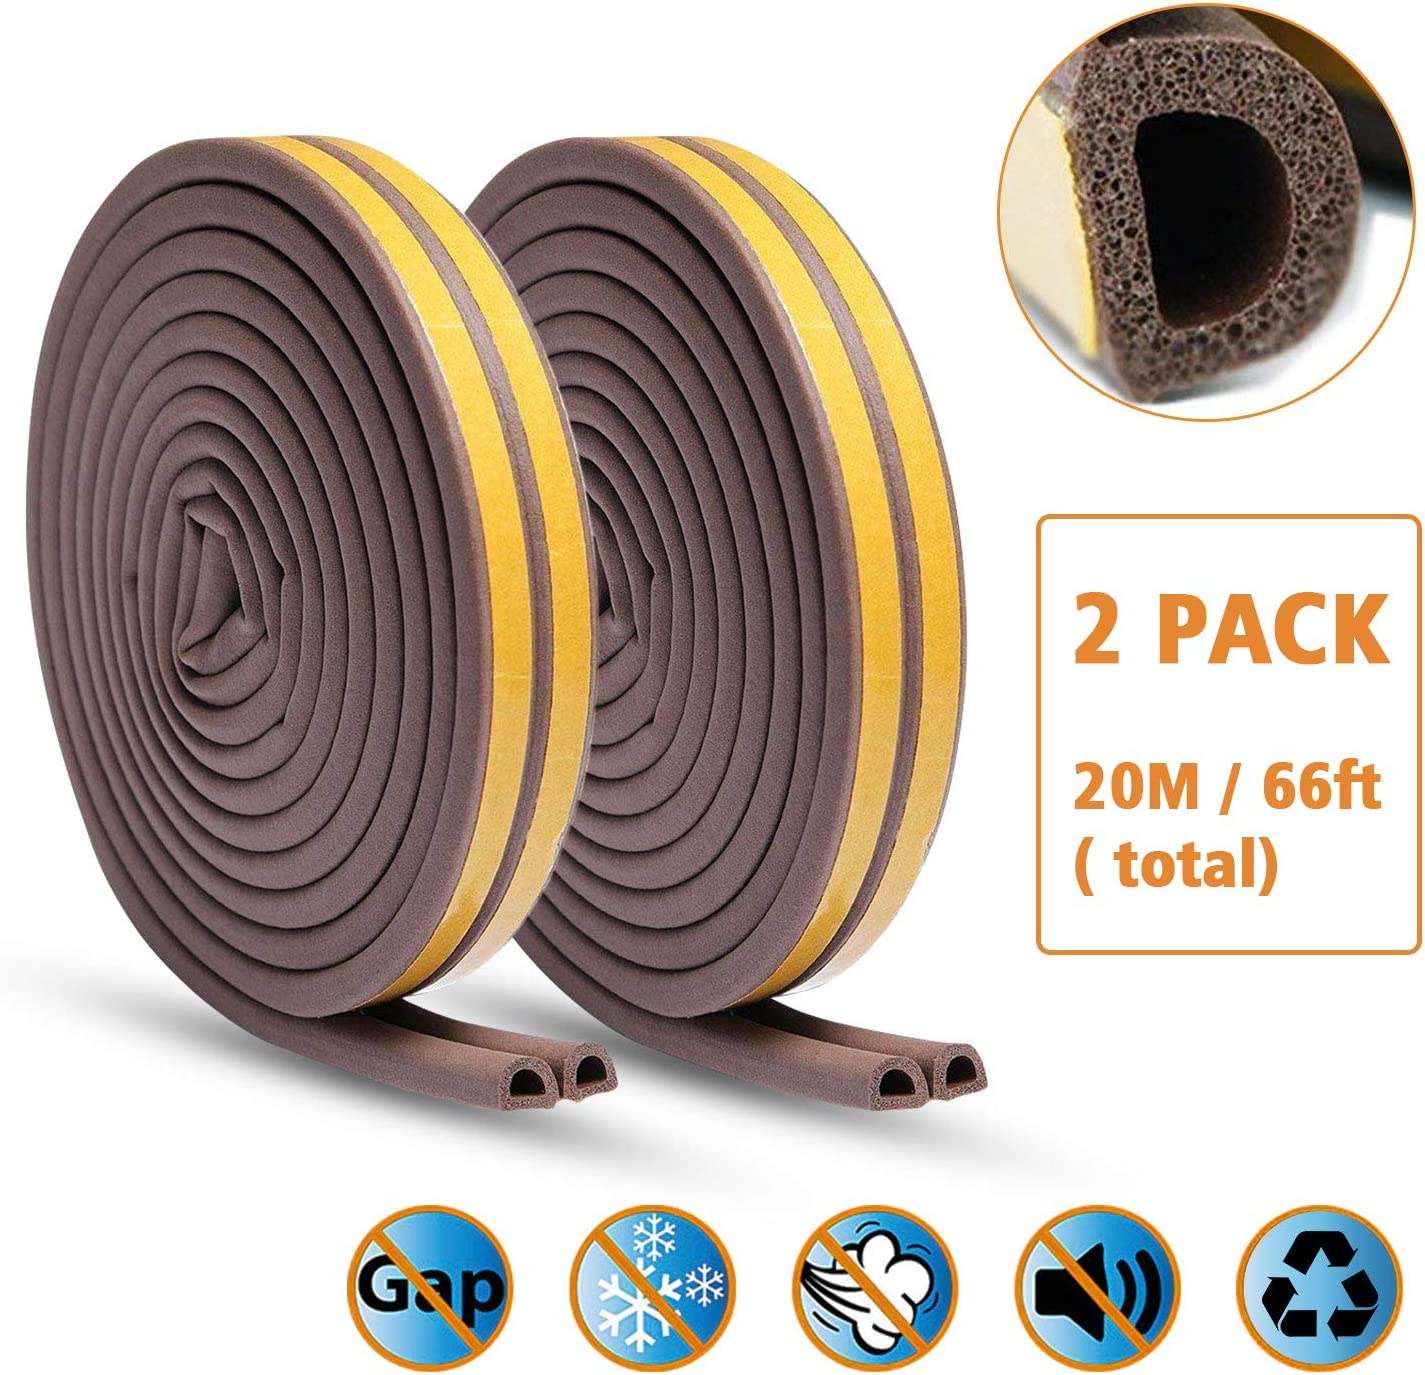 KELIIYO Door Weather Stripping, Window Seal Strip for Doors and Windows- Self-adhisive Foam Weather Strip Door Seal | Soundproof Seal Strip for Cracks and Gaps Epdm D Type (66Ft) 2 Pack (Brown)